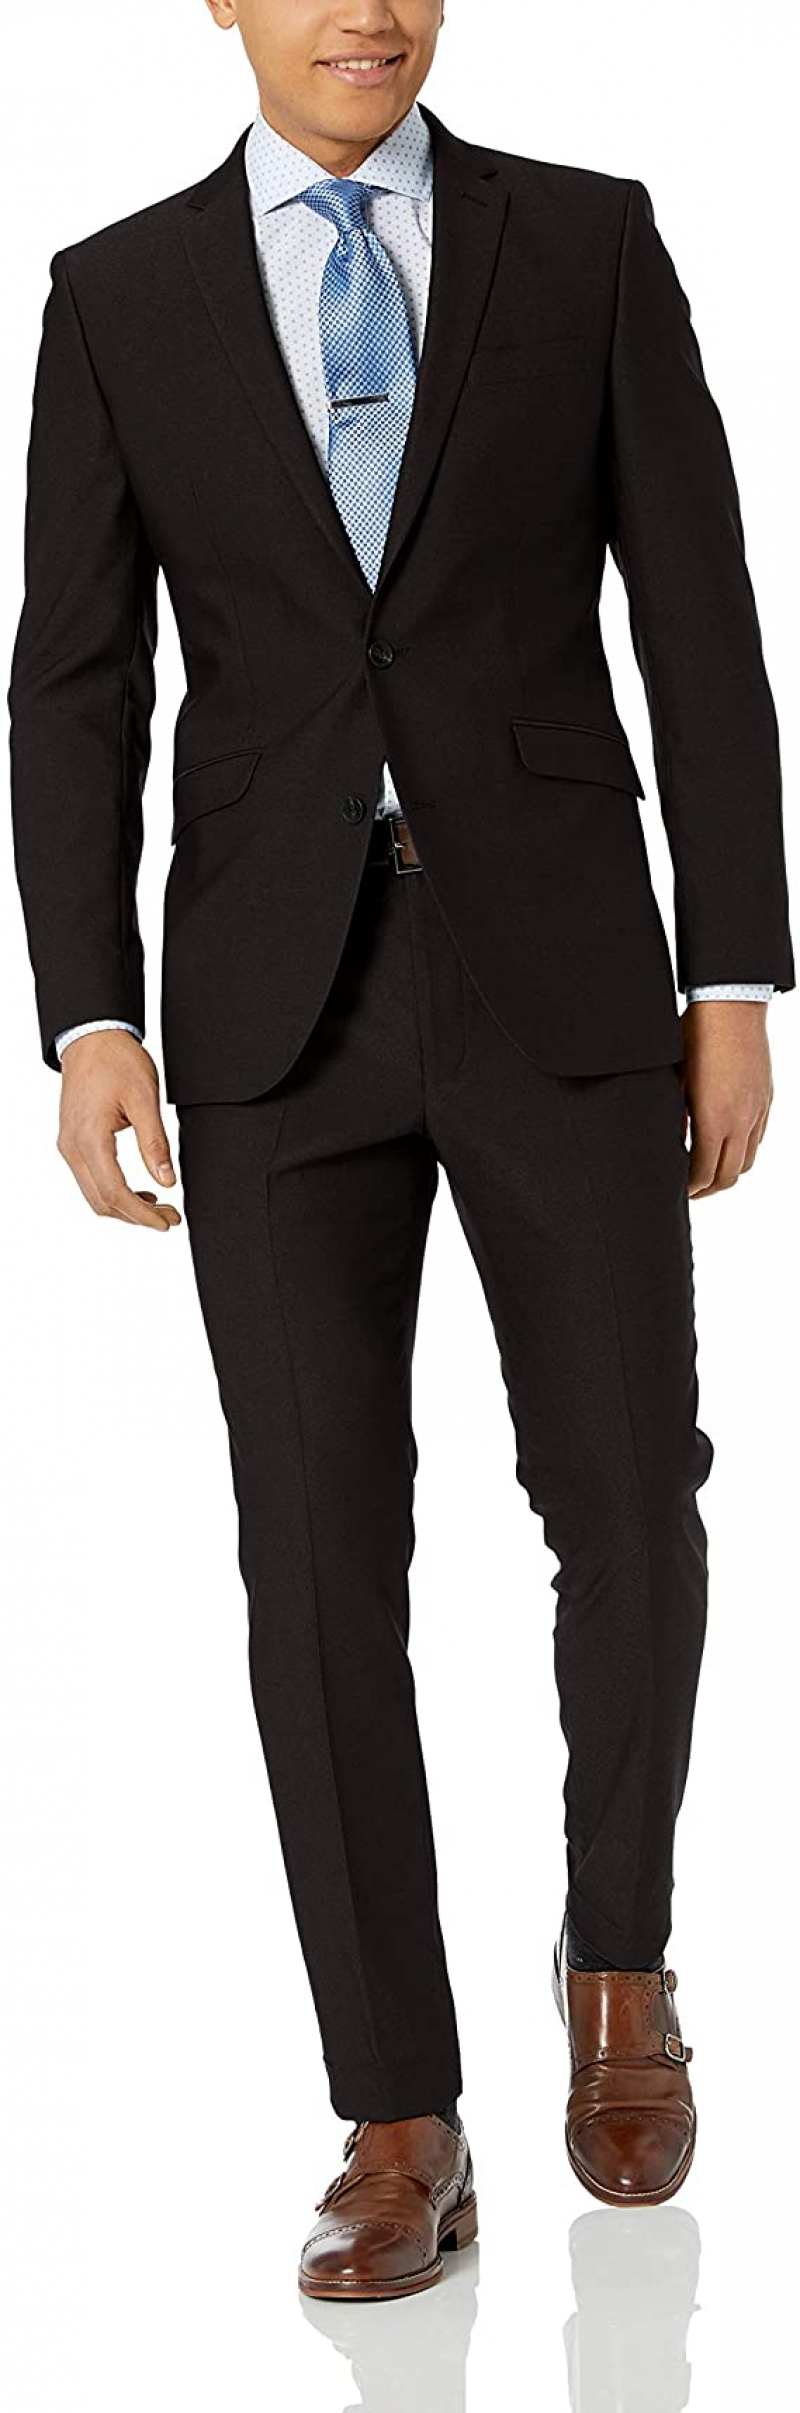 ihocon: Unlisted by Kenneth Cole Men's 2 Button Slim Fit Suit with Hemmed Pant 男士西服一套